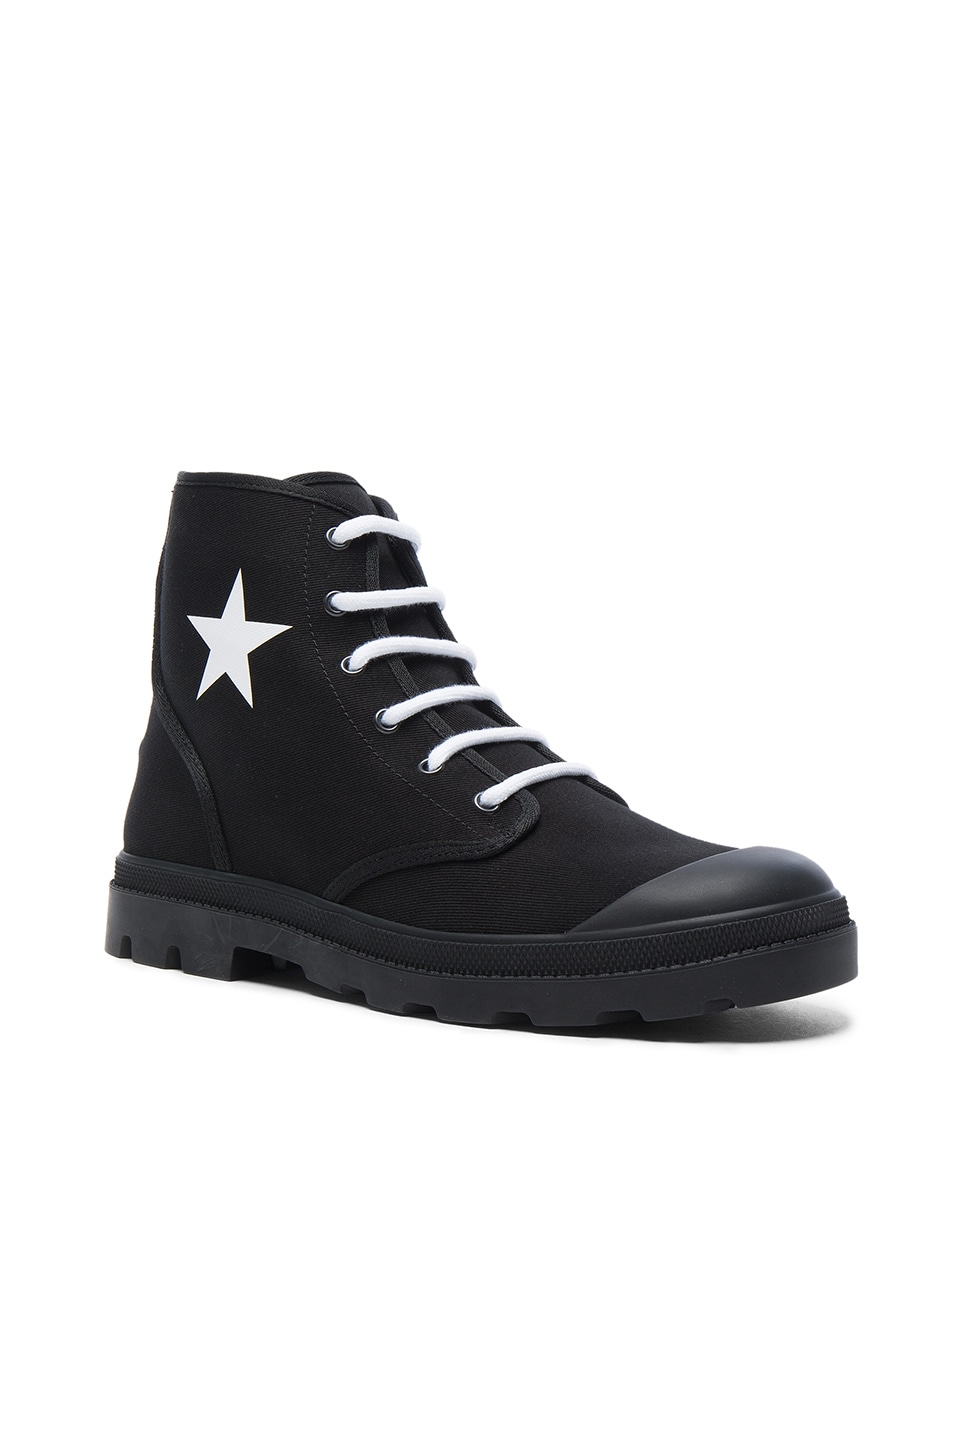 Givenchy Canvas Star Sneaker Boots in . cl6t7mApgf